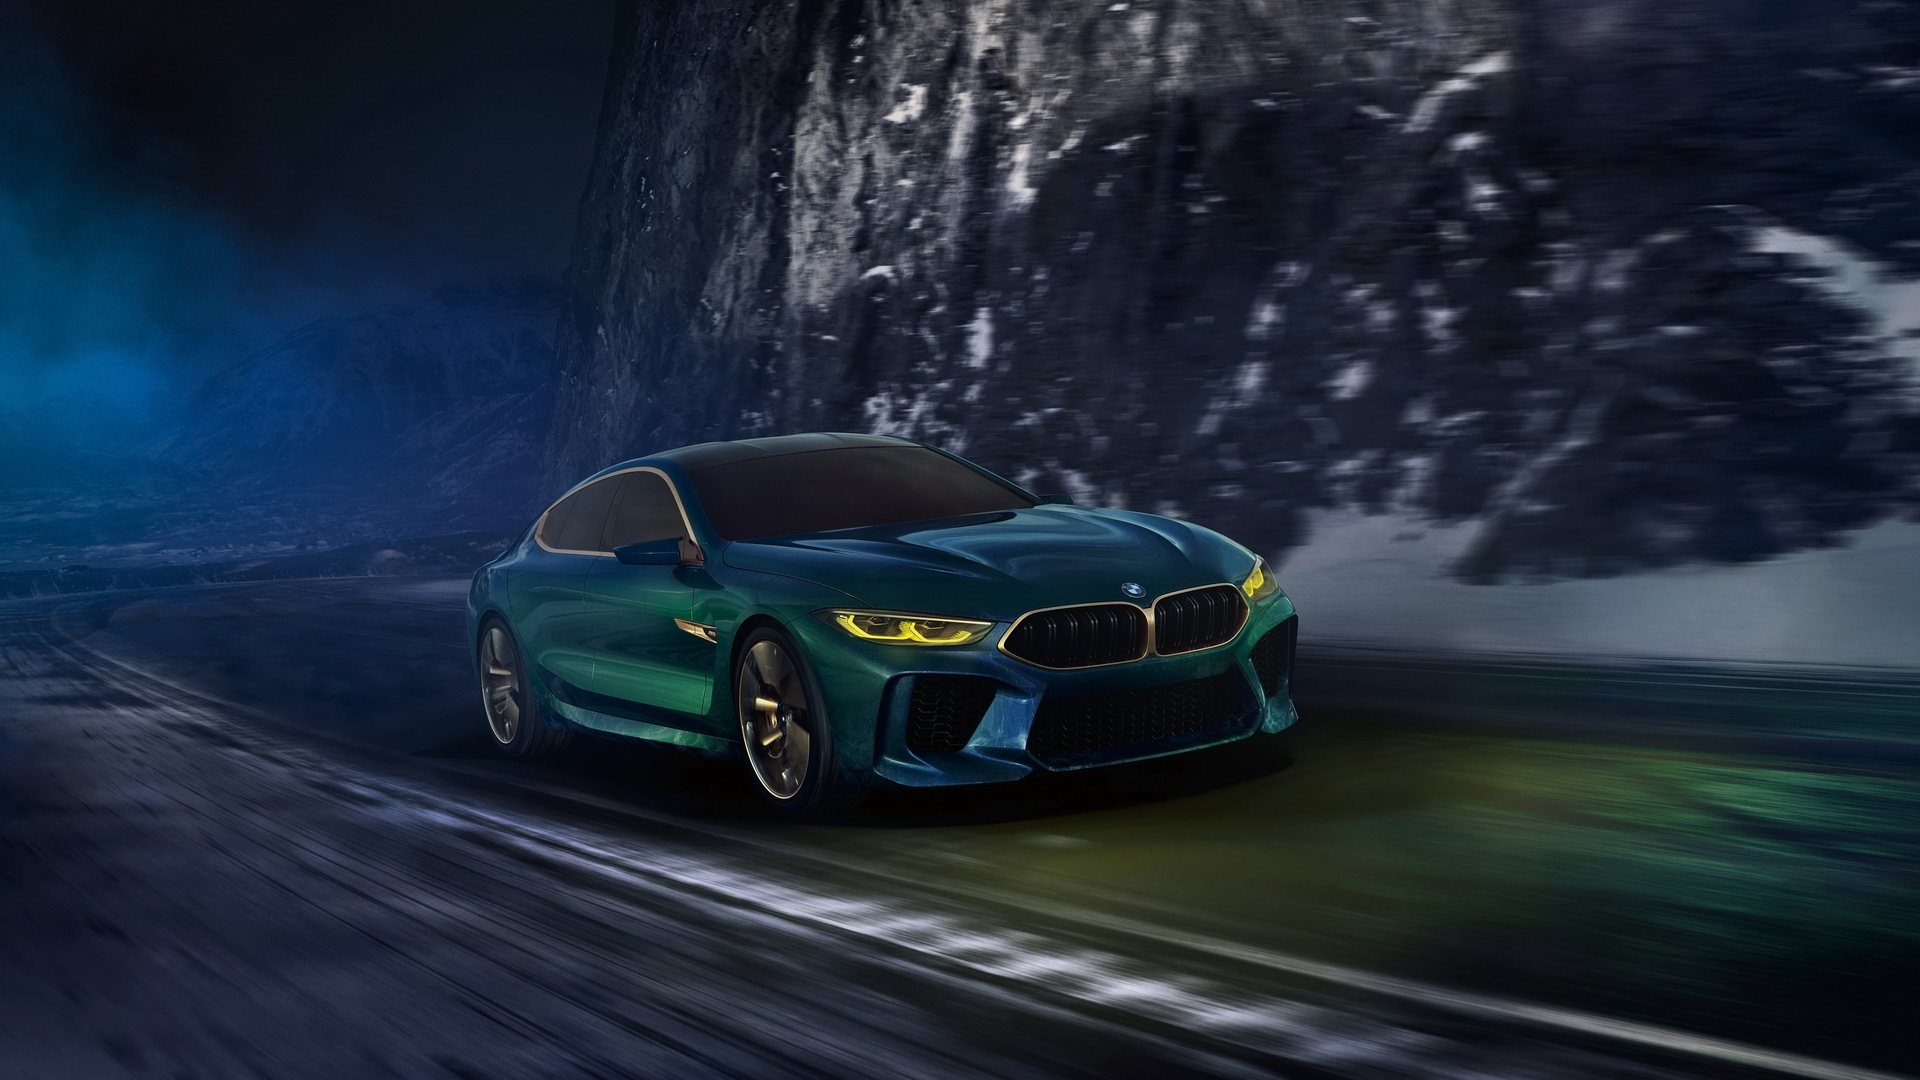 Bmw M8 Gran Coupe Hd Wallpaper Background Image